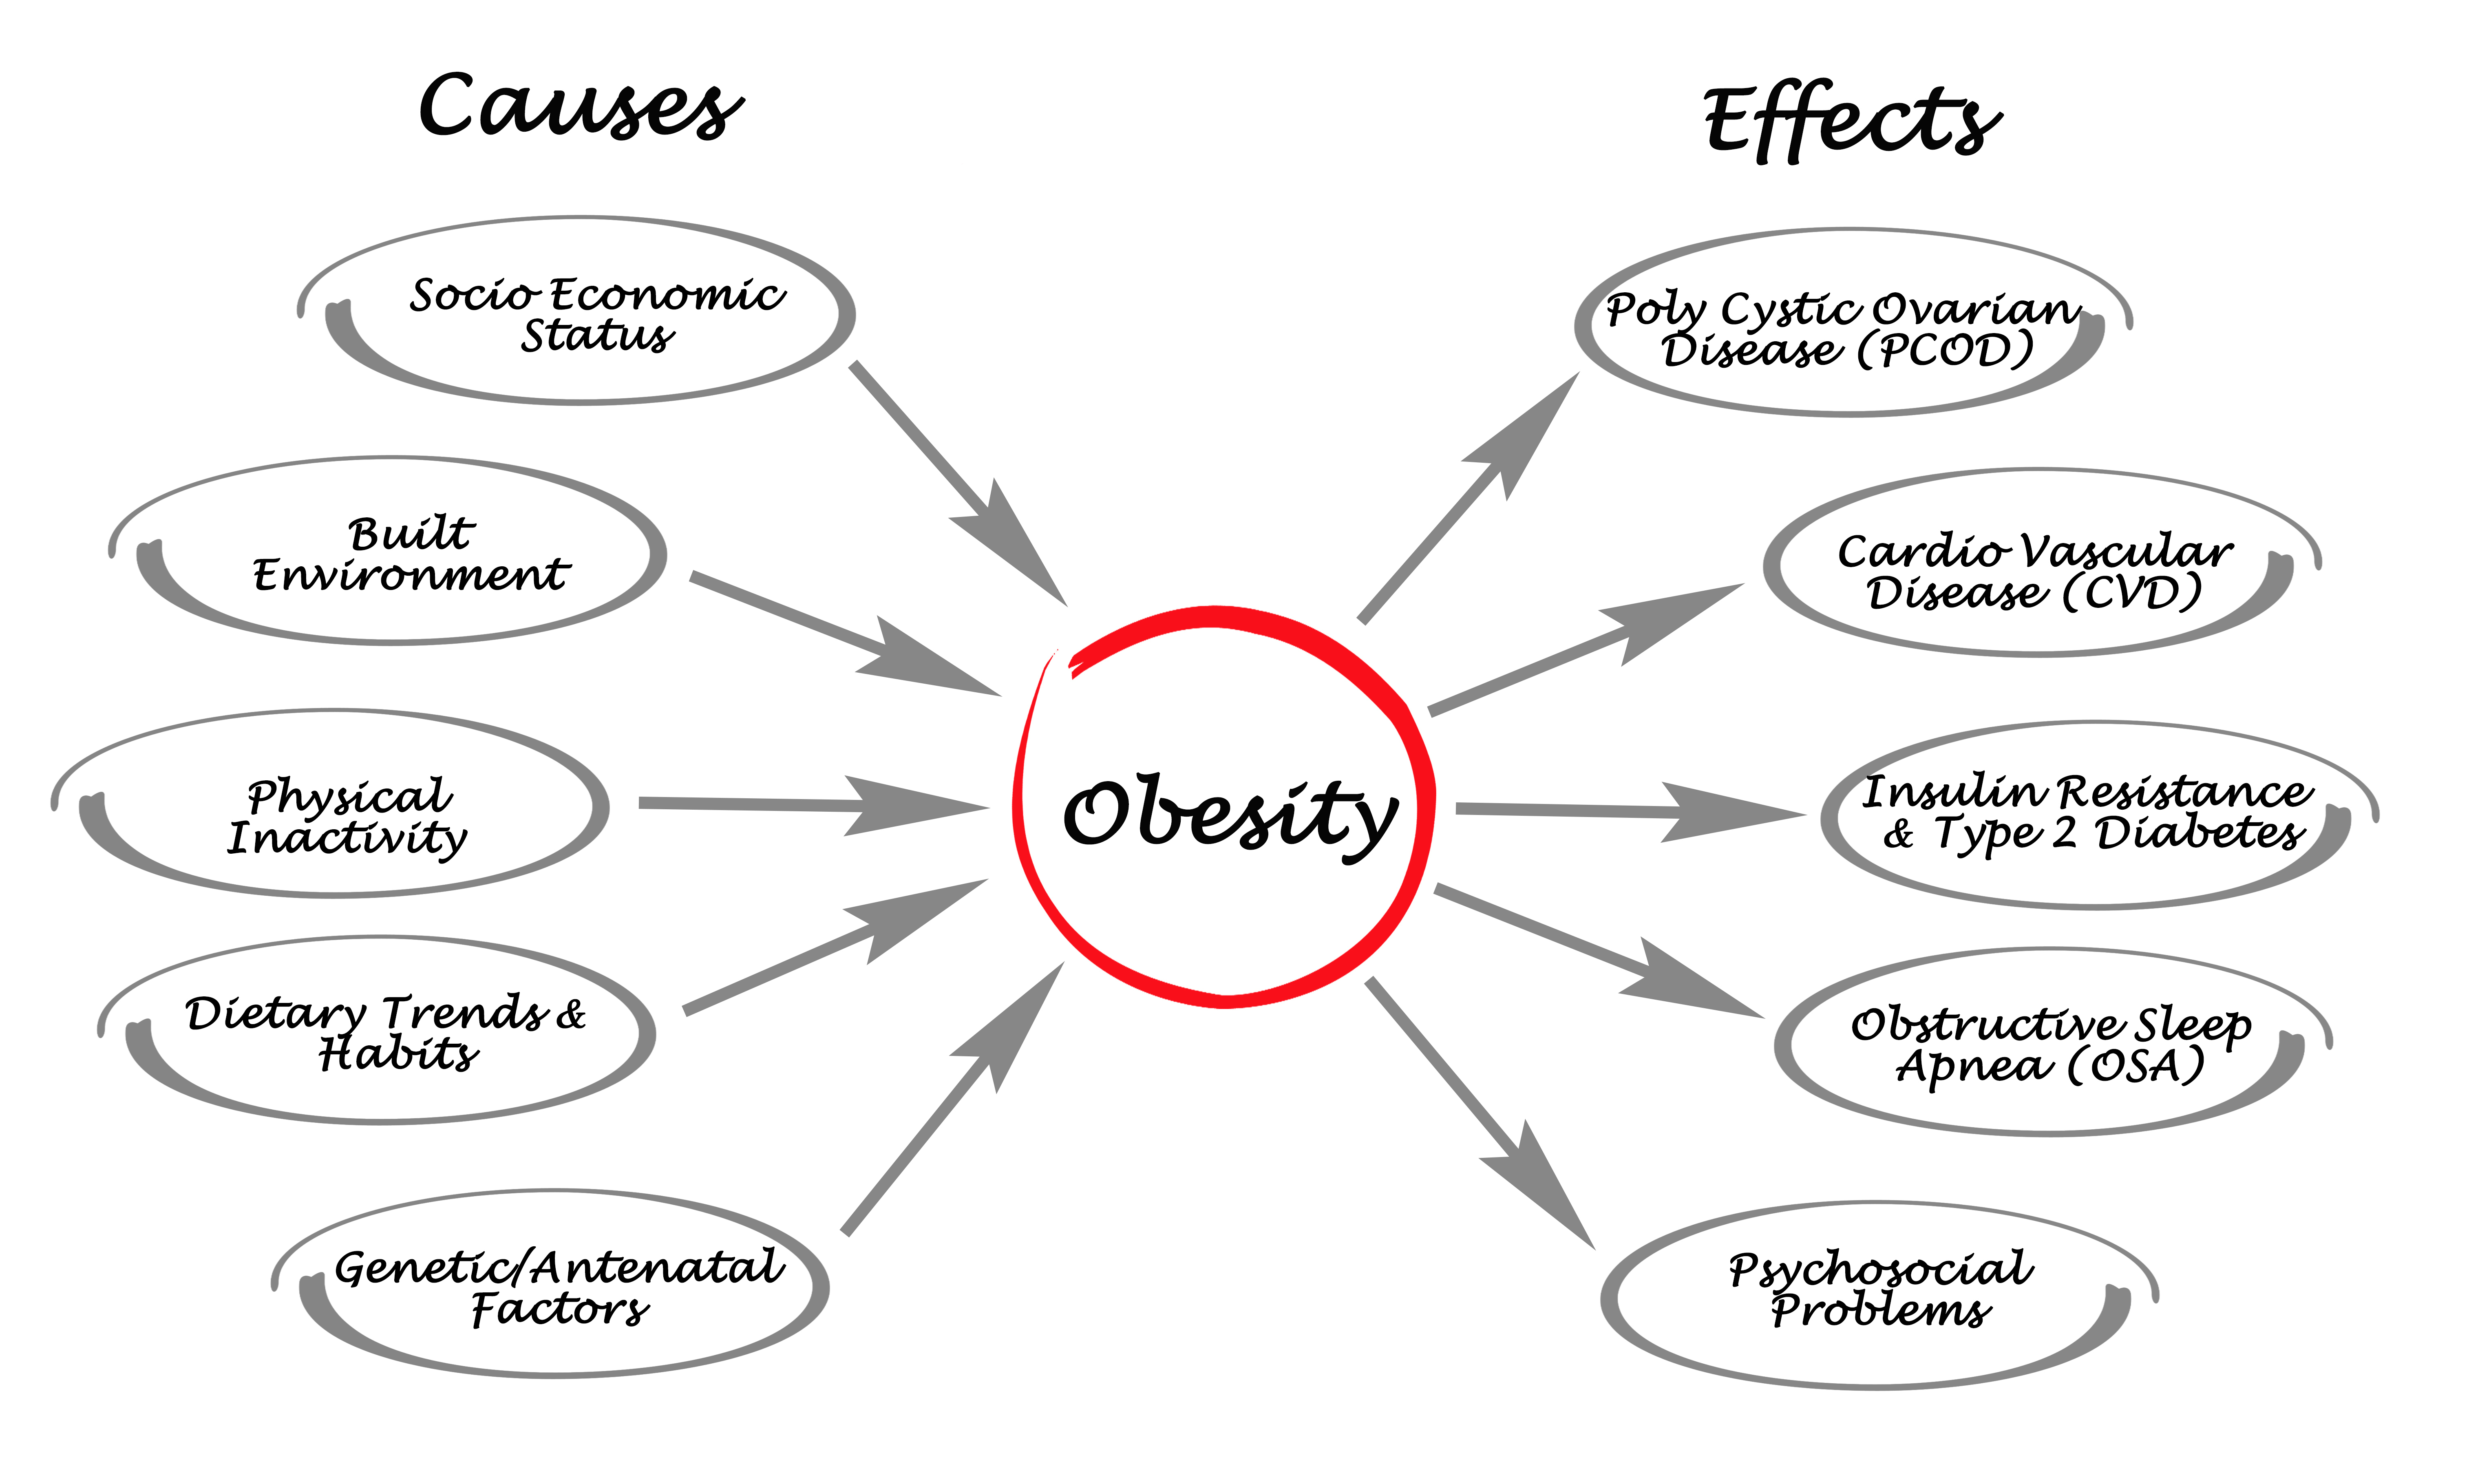 causes and effects of childhood obesity essay Nowadays, obesity is becoming more and more common in children than adults, which has alarming effects on the communitythis essay will discuss the causes and effects of obesity and what are the ways that government can do as well as the families.